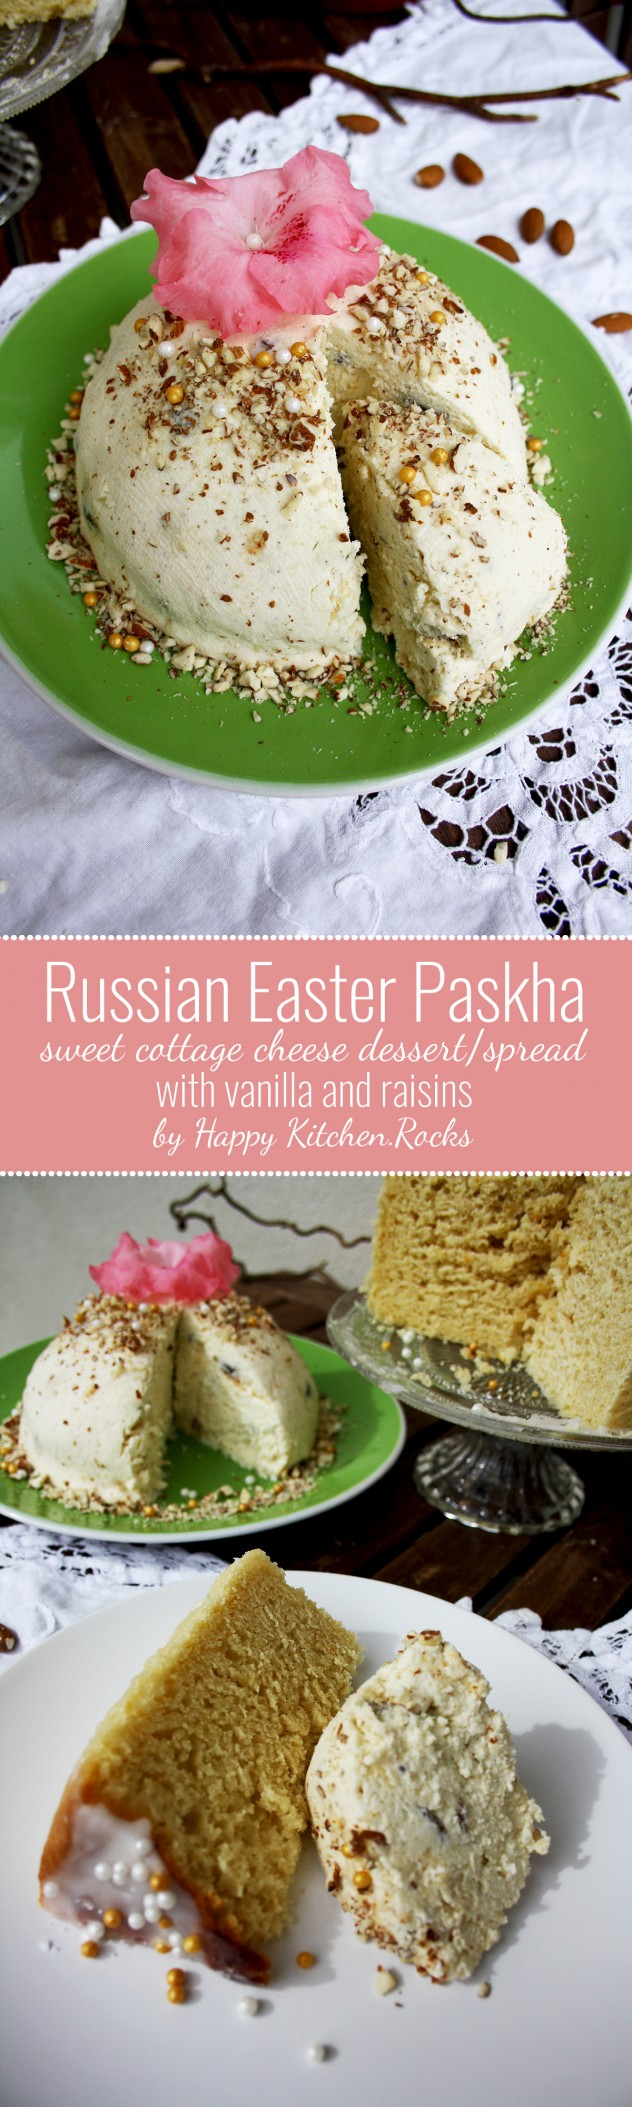 Traditional Russian Easter paskha, a festive dish made of cottage cheese (tvorog), butter, dried fruits and vanilla.This paskha recipe is healthy and incredibly delicious. Serve it as a spread for sweet Easter bread (kulich) or as a dessert.